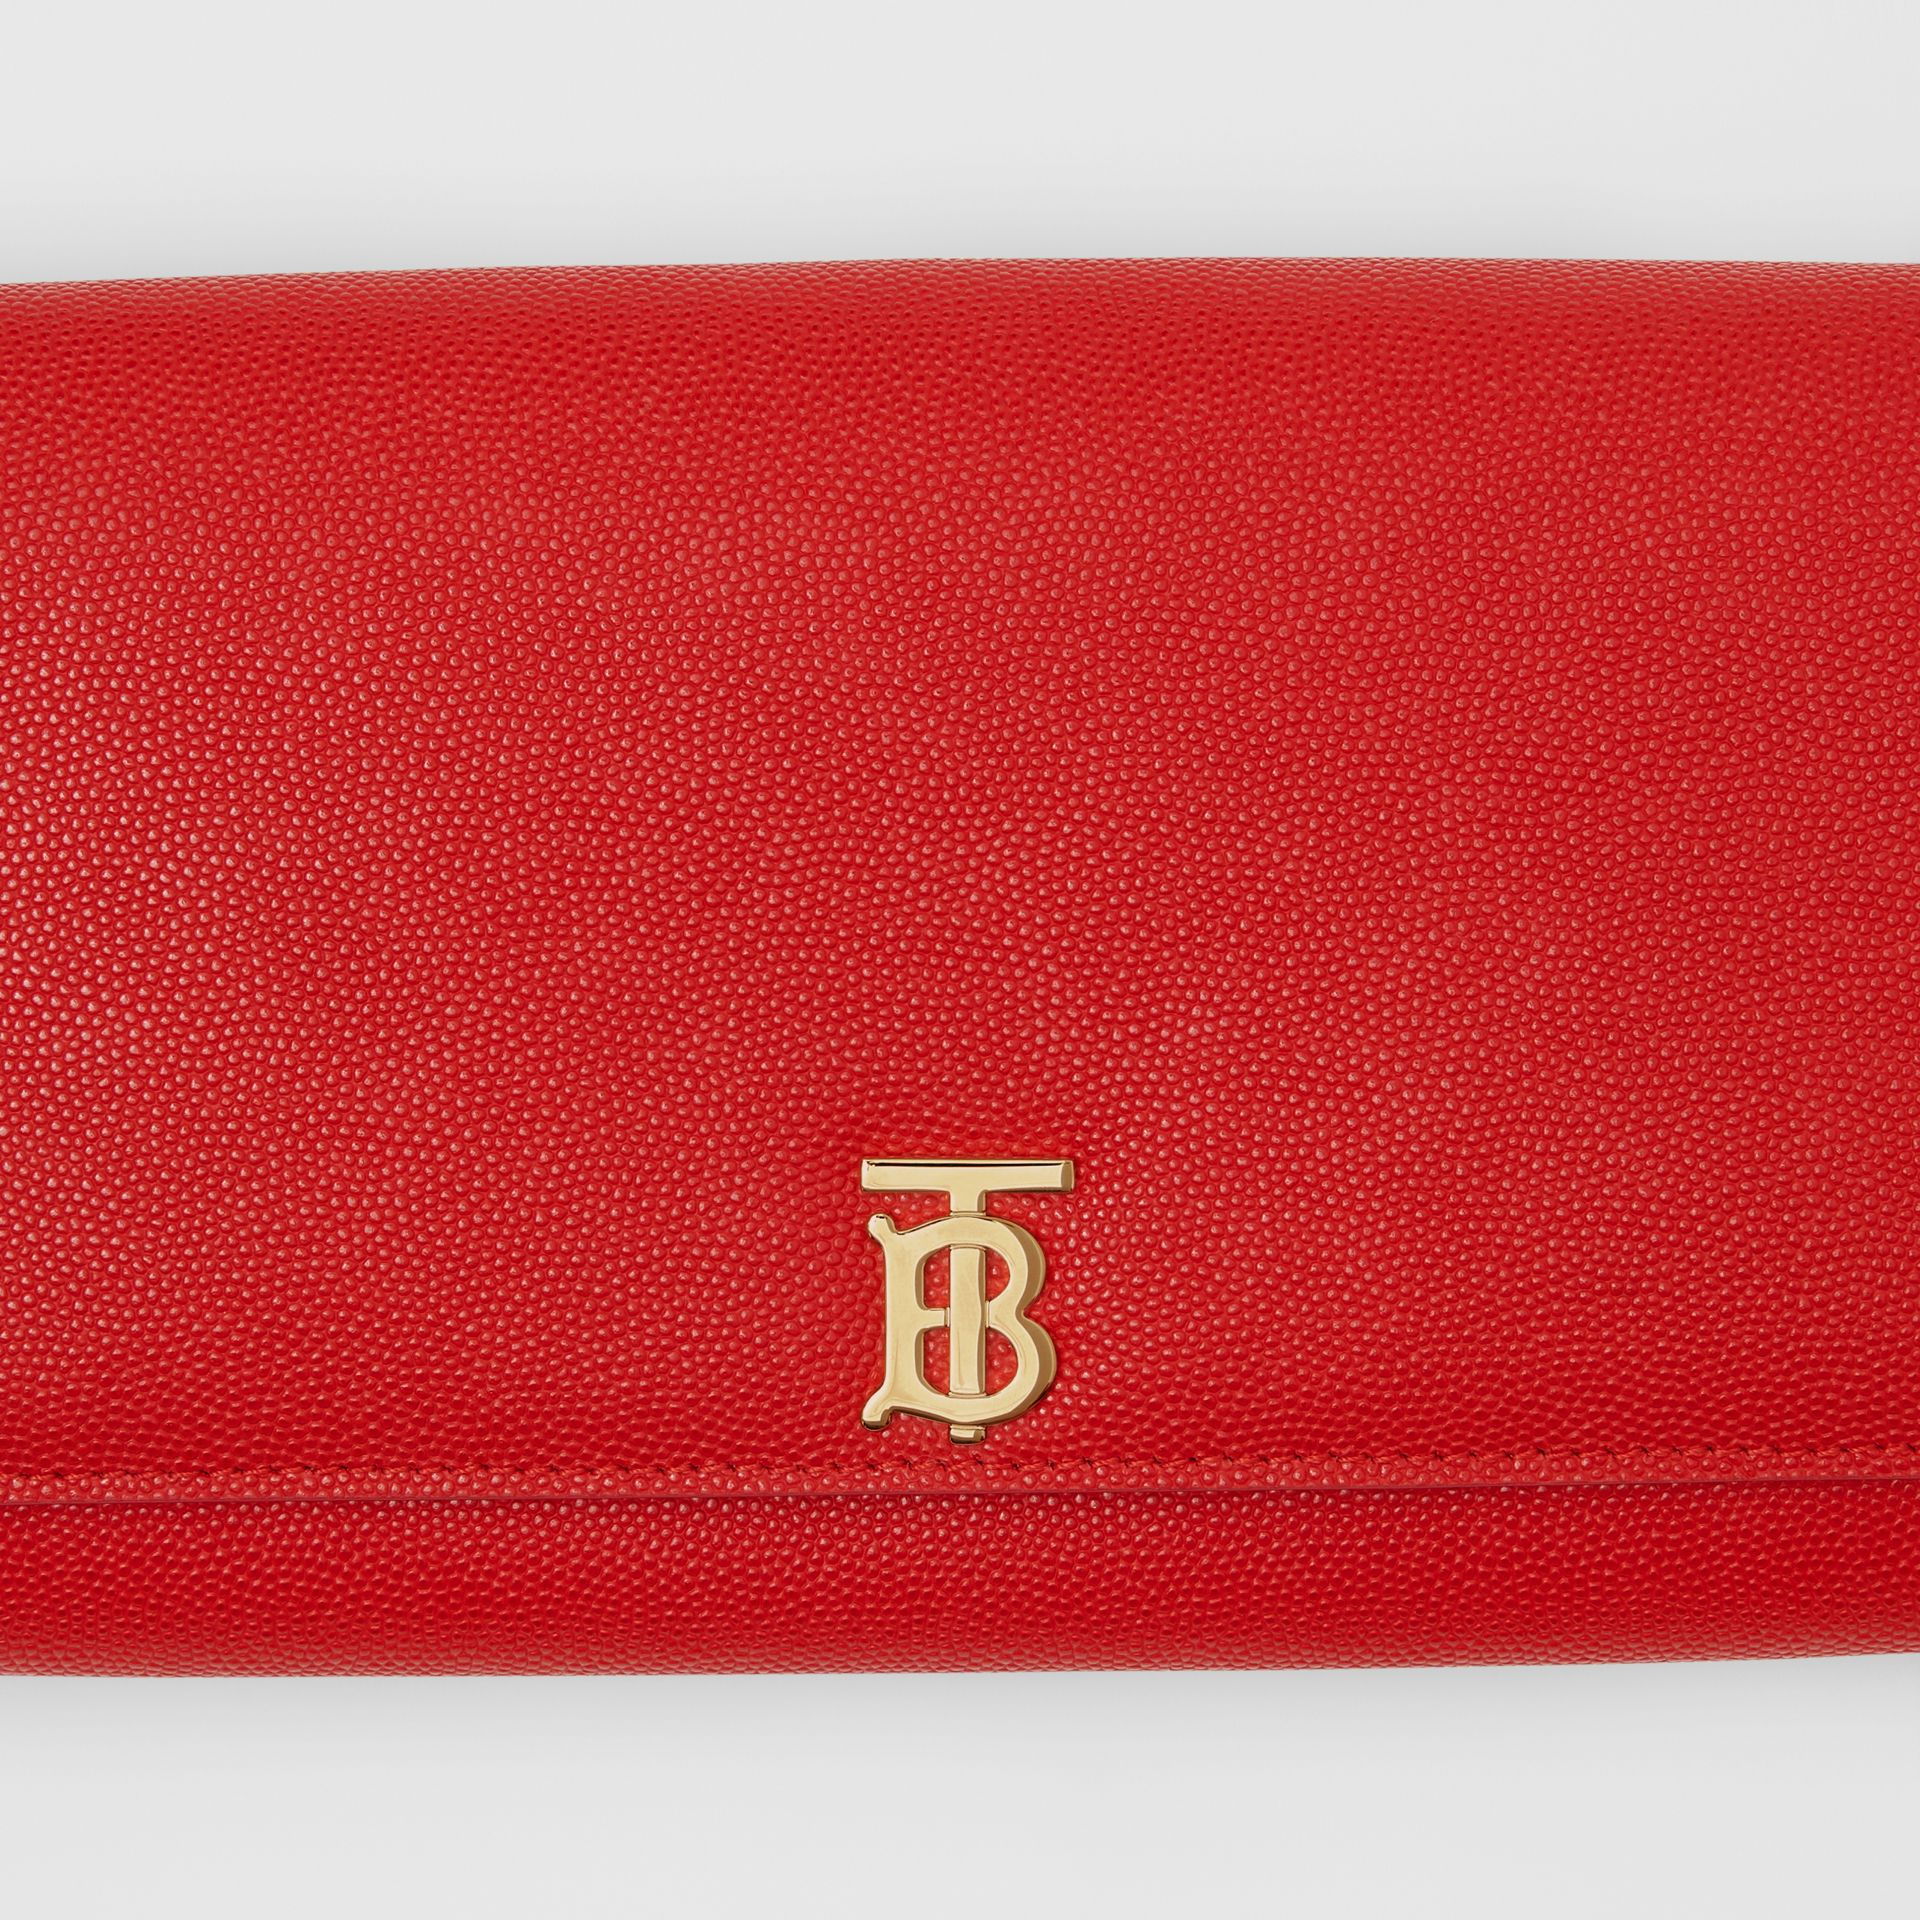 Monogram Motif Leather Wallet with Detachable Strap in Bright Red - Women | Burberry Hong Kong S.A.R - gallery image 1